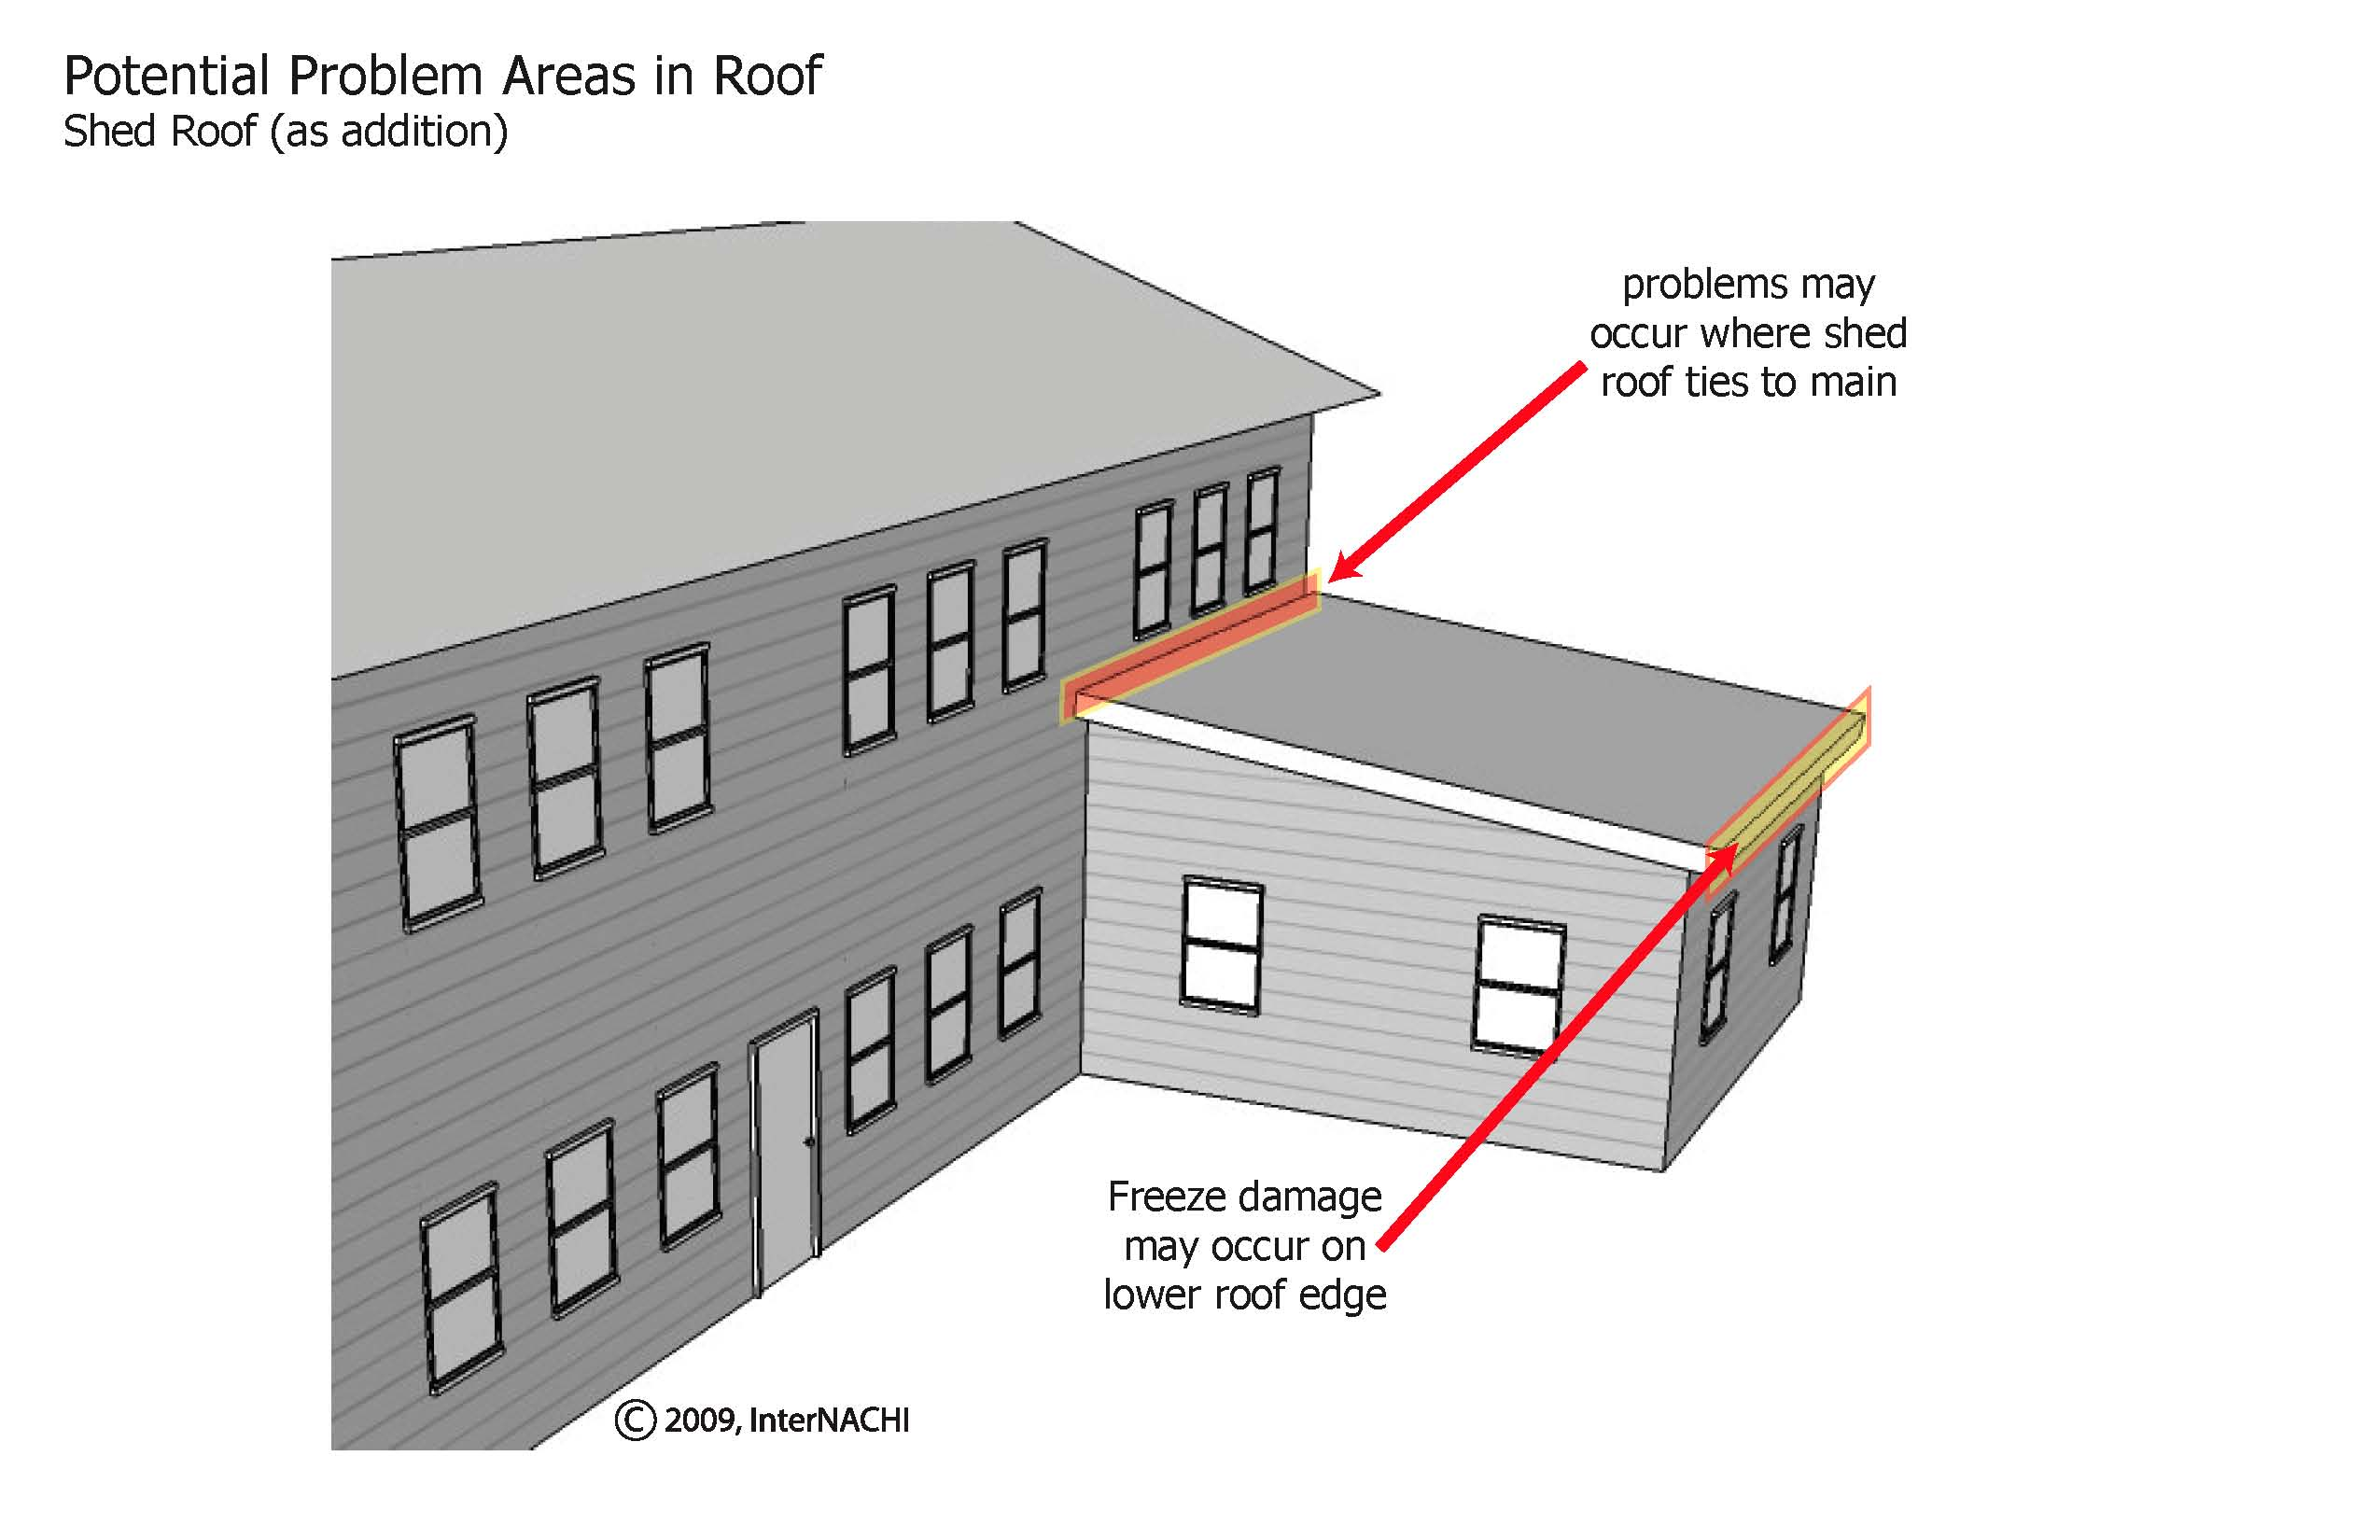 Shed roof addition problem areas.